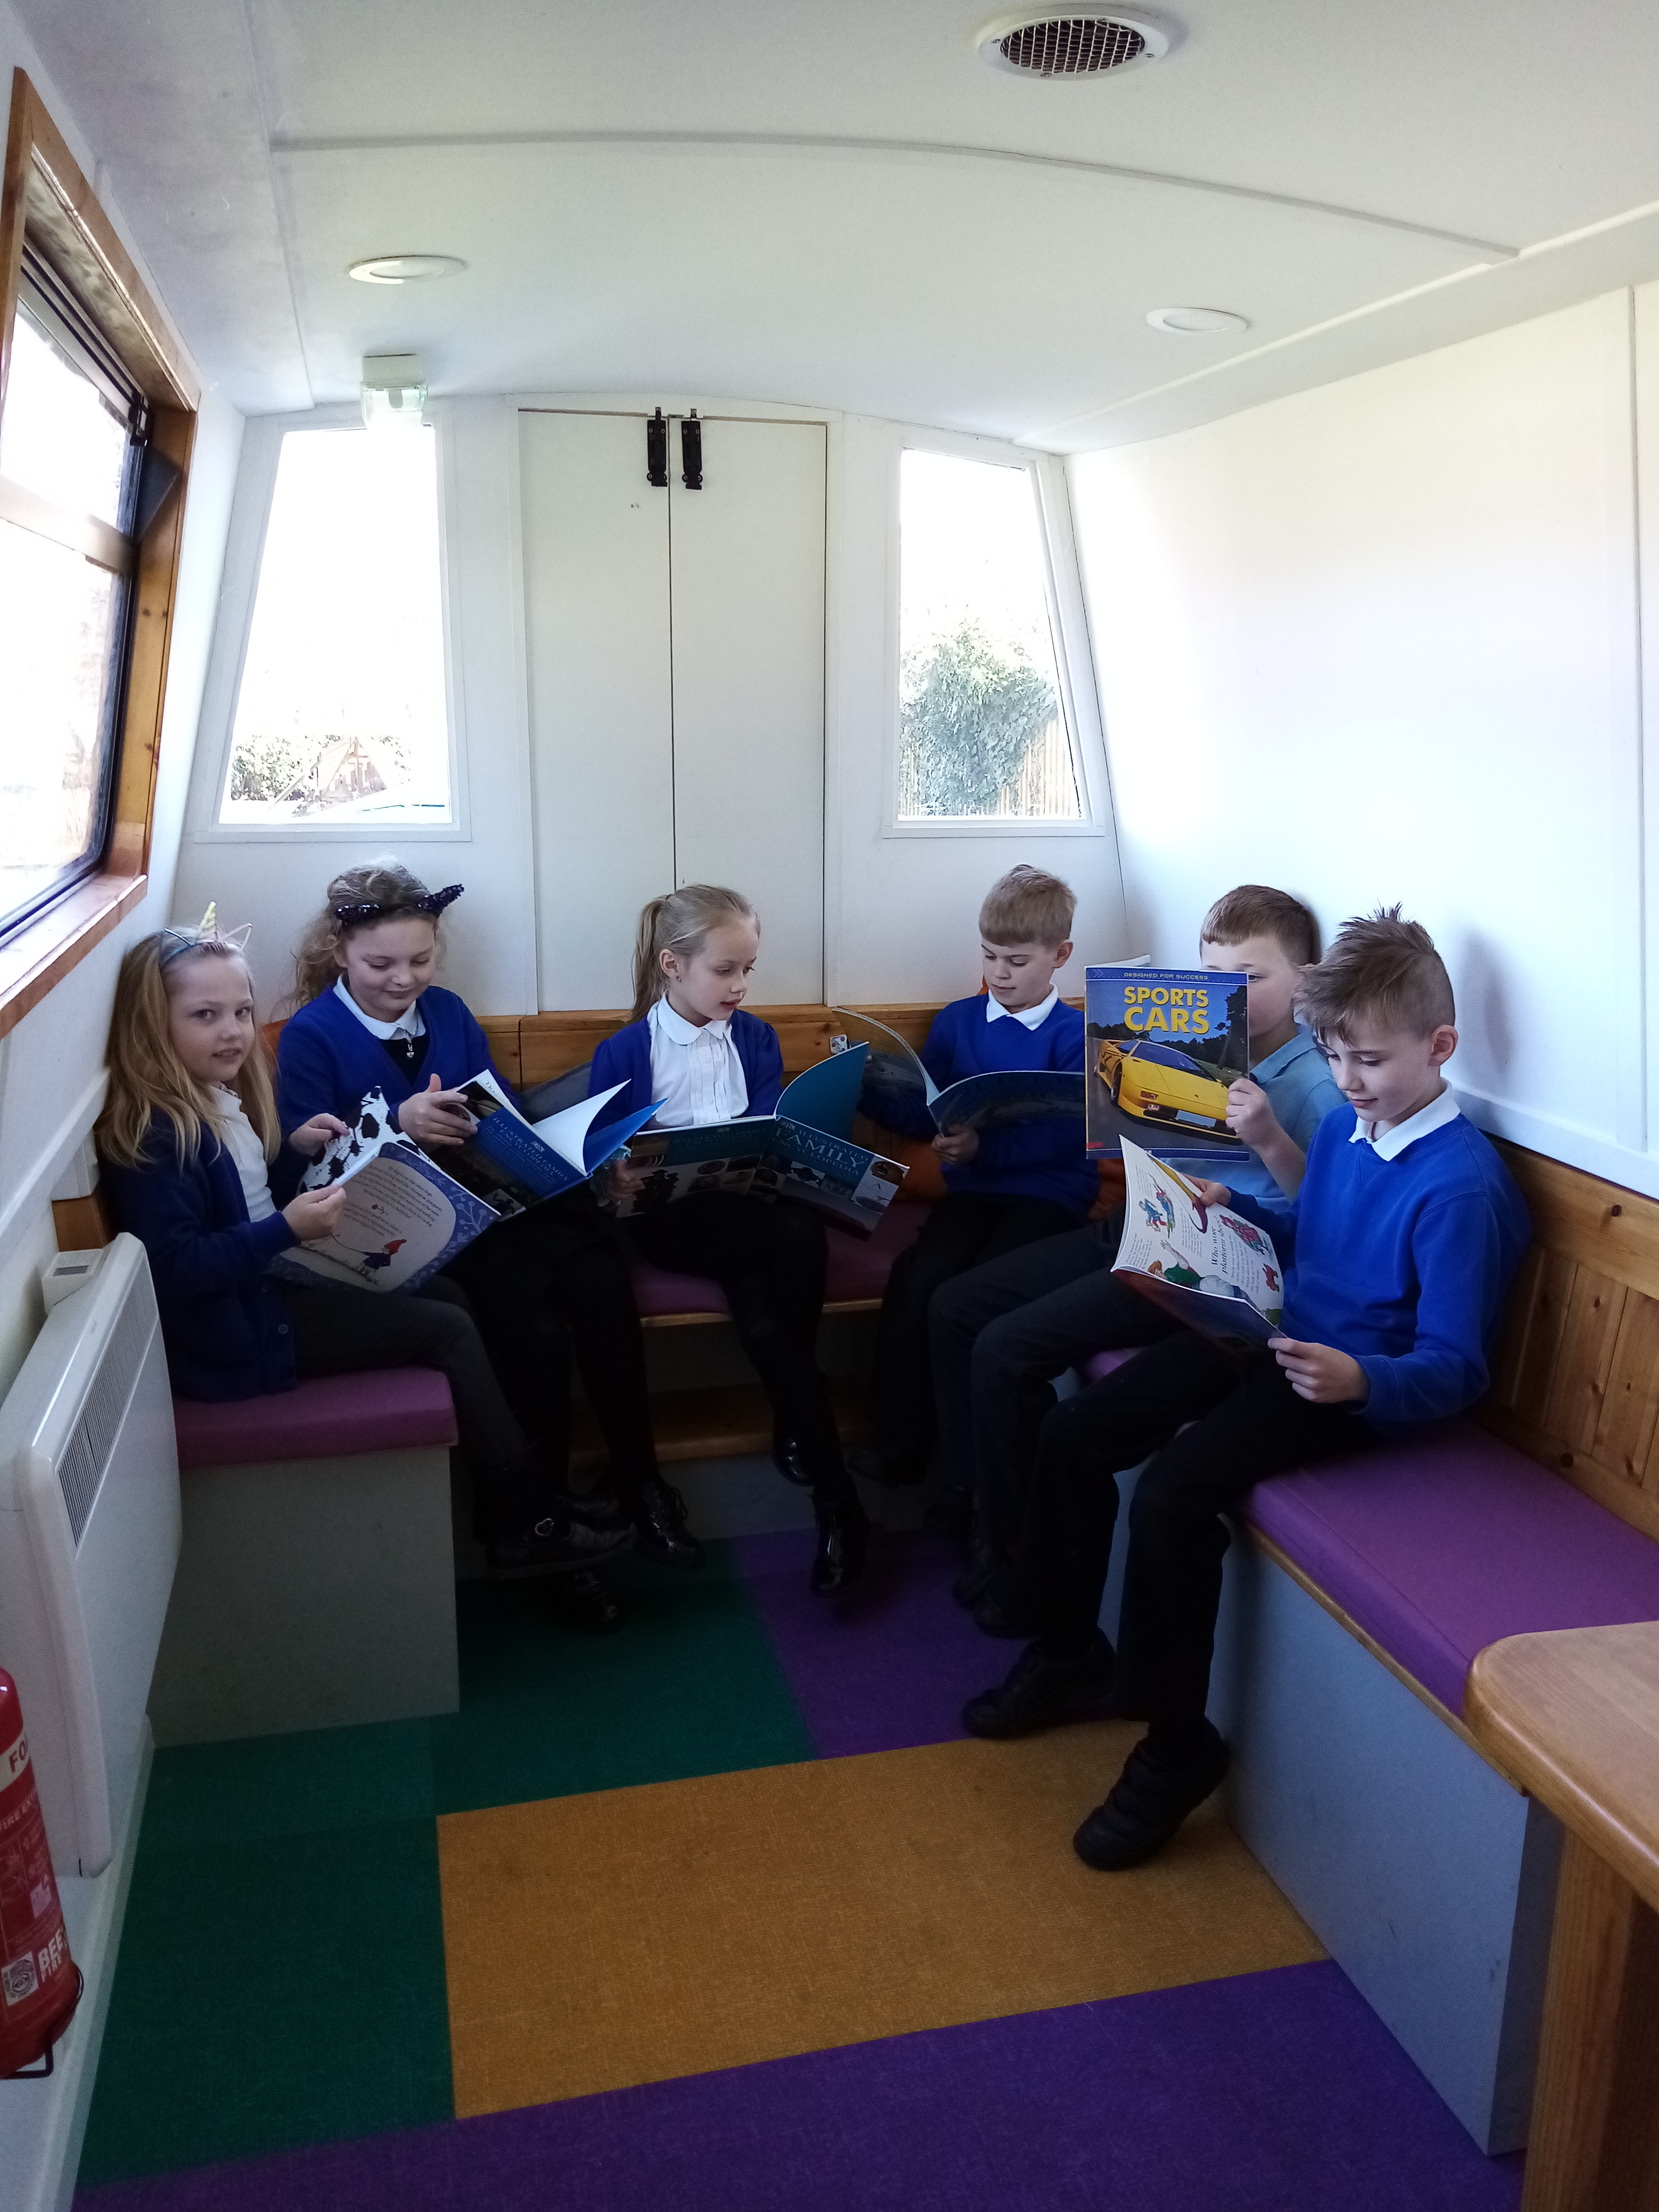 NEWS: Pupils embark on literary voyage of discovery thanks to 'Book Barge' project